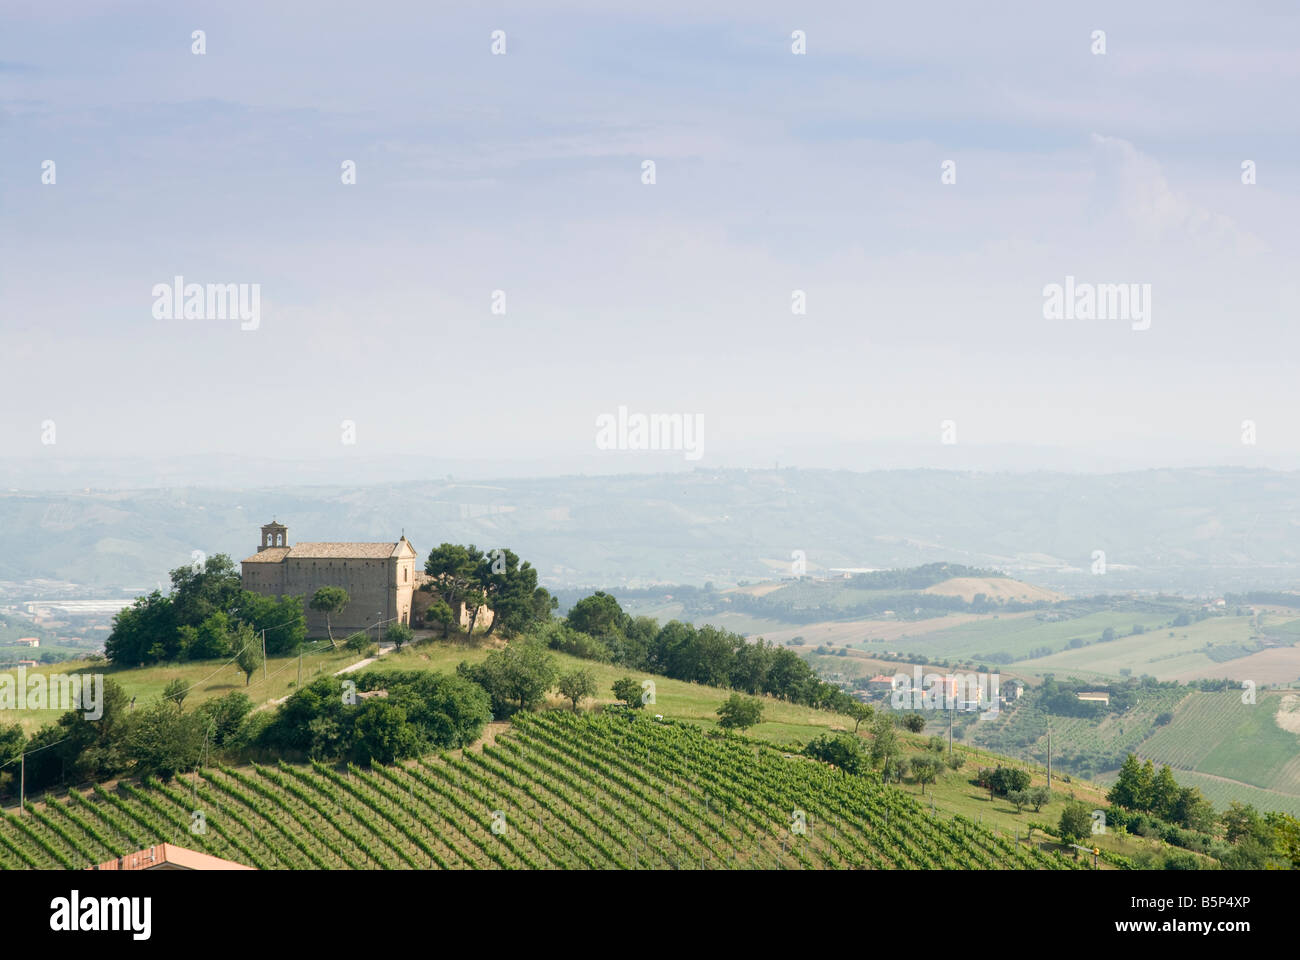 Church with olive trees in Le Marche - Stock Image